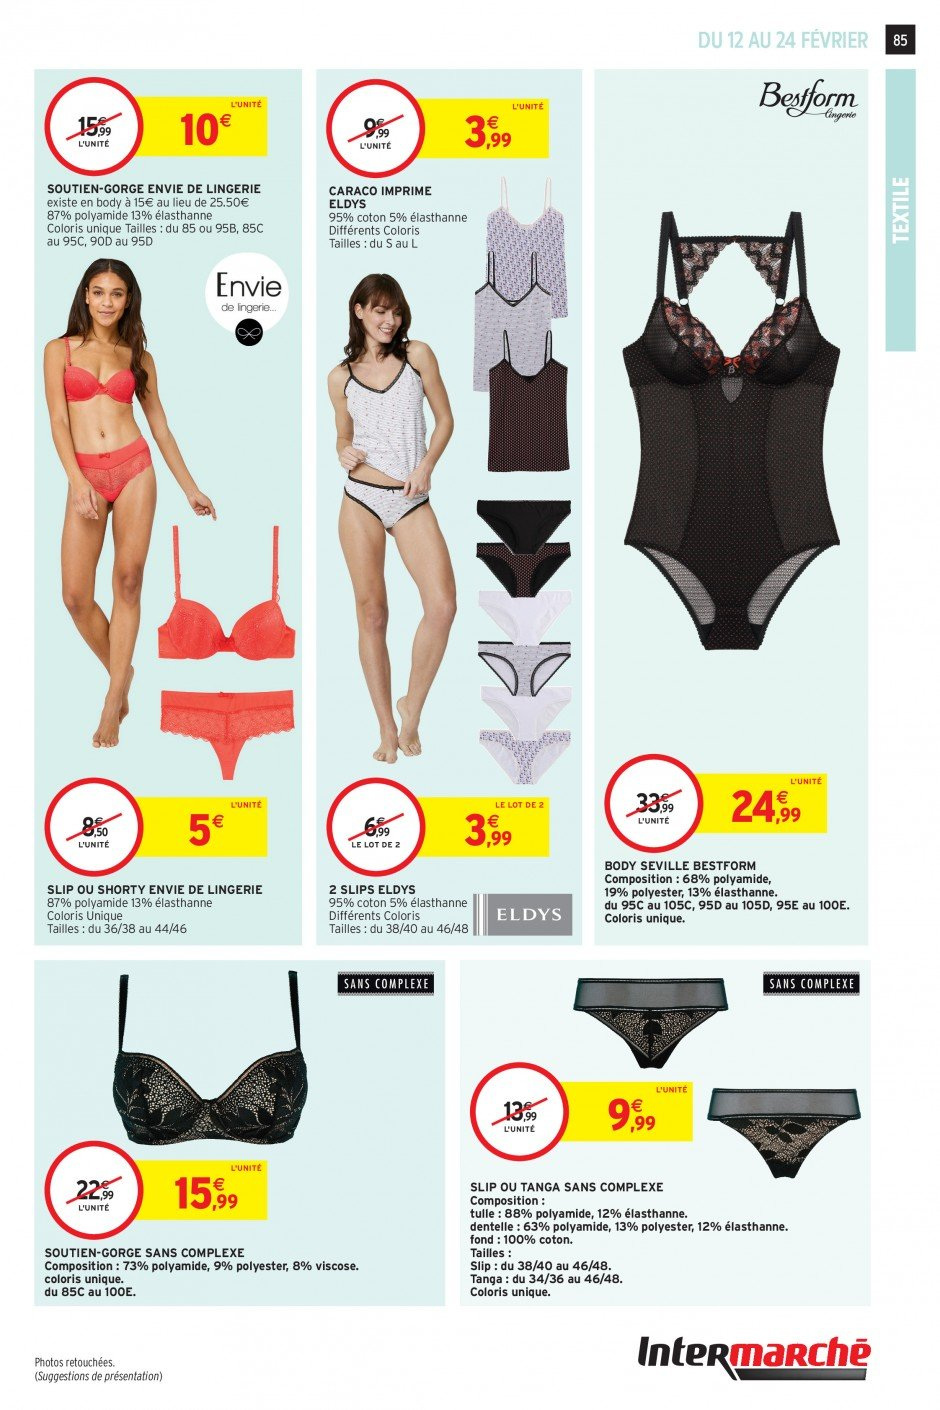 Catalogue Intermarché - 12.02.2019 - 24.02.2019. Page 83.